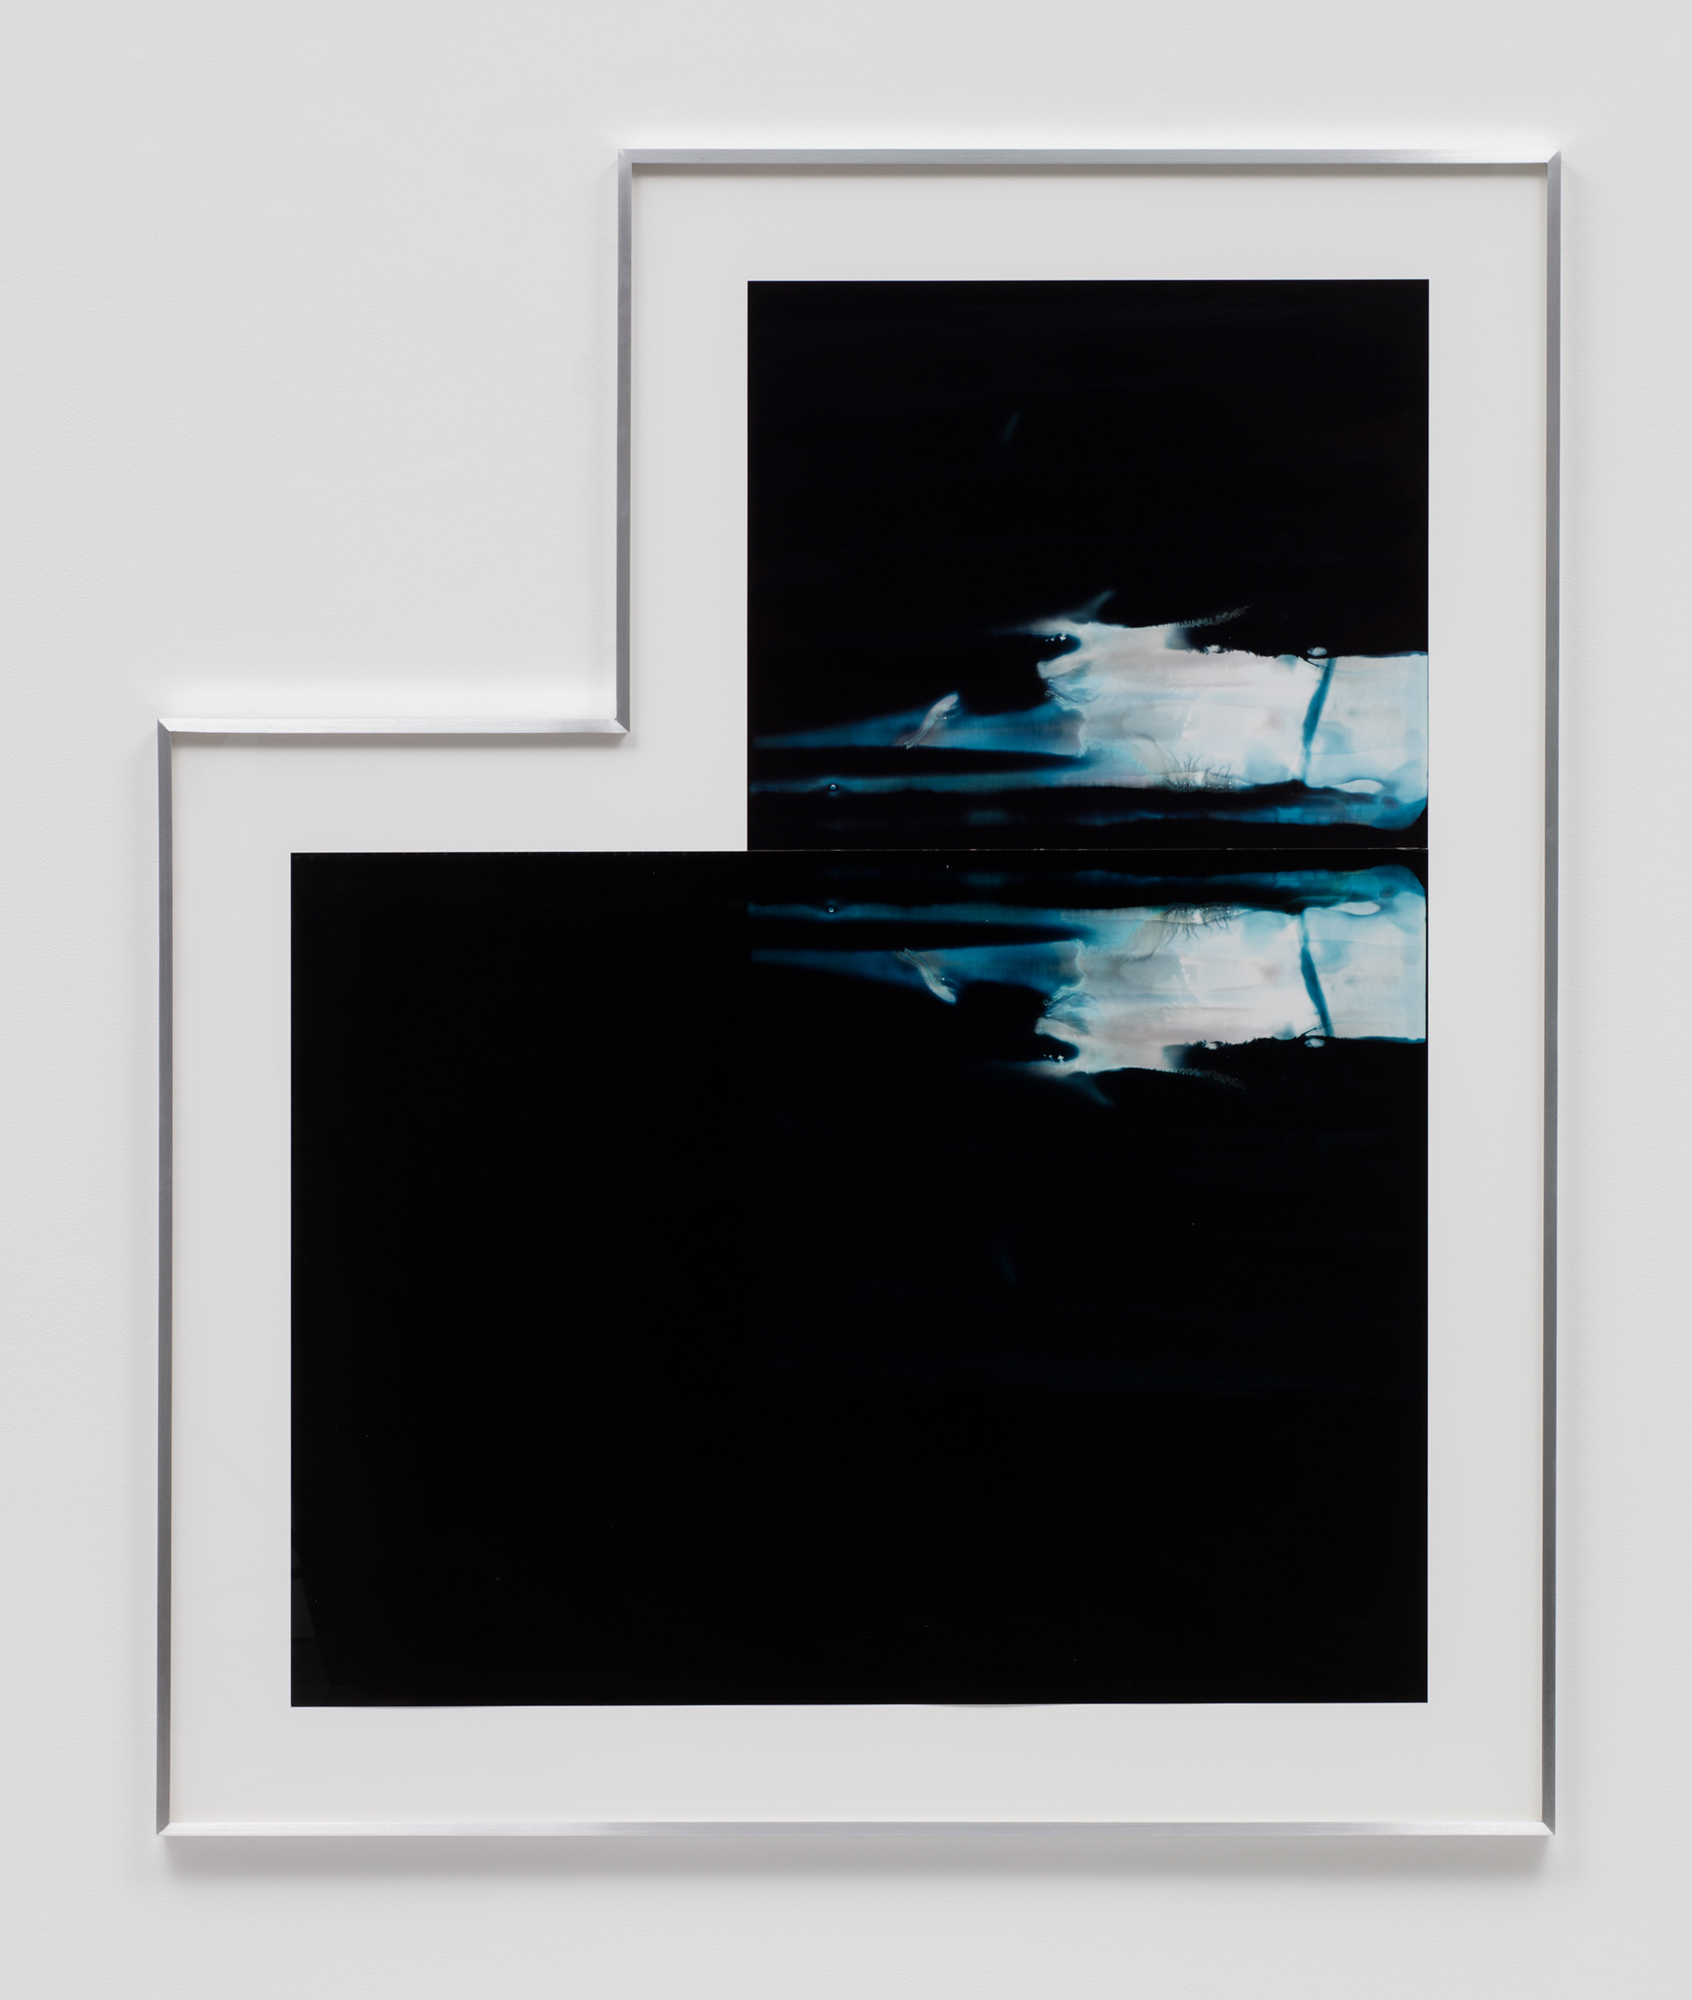 Asymmetrical Inverted RA4 Contact Print / Processor Stall (CMY: Los Angeles, California, January 17, 2018; Fujicolor Crystal Archive Super Type C, Em. No. 159-016 / Fujicolor Crystal Archive Super Type II, Em. No. 859809B217; Kodak Ektacolor RA Bleach-Fix and Replenisher; Kreonite KM IV 5225 RA4 Color Processor, Ser. No. 00092174; 01618)   2018  Color photographic paper  59 1/4 x 49 1/2 inches   Equivalents, 2018